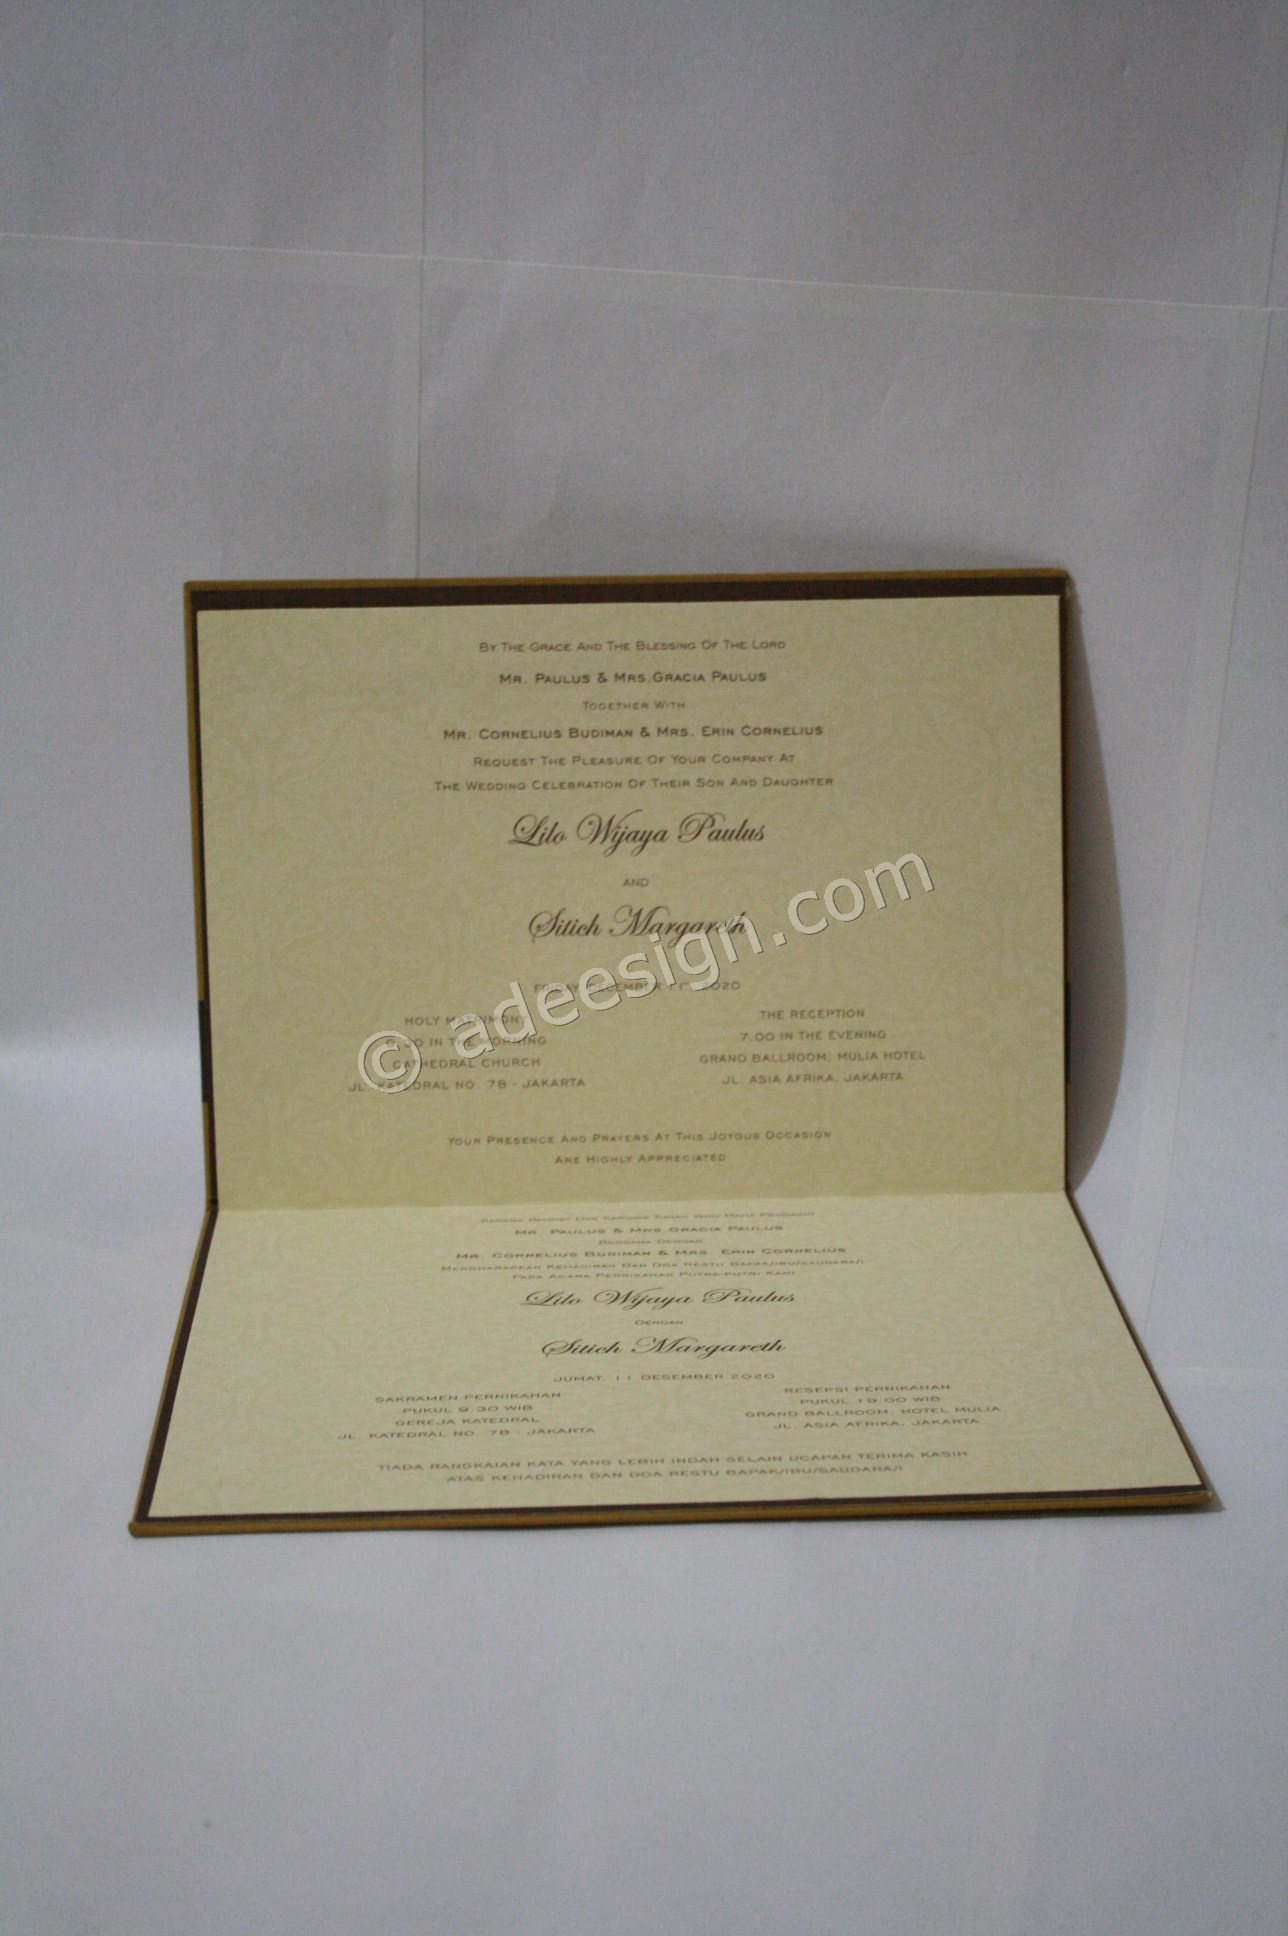 Undangan Pernikahan Hardcover Lilo dan Stich 4 - Membuat Wedding Invitations Eksklusif di Jeruk